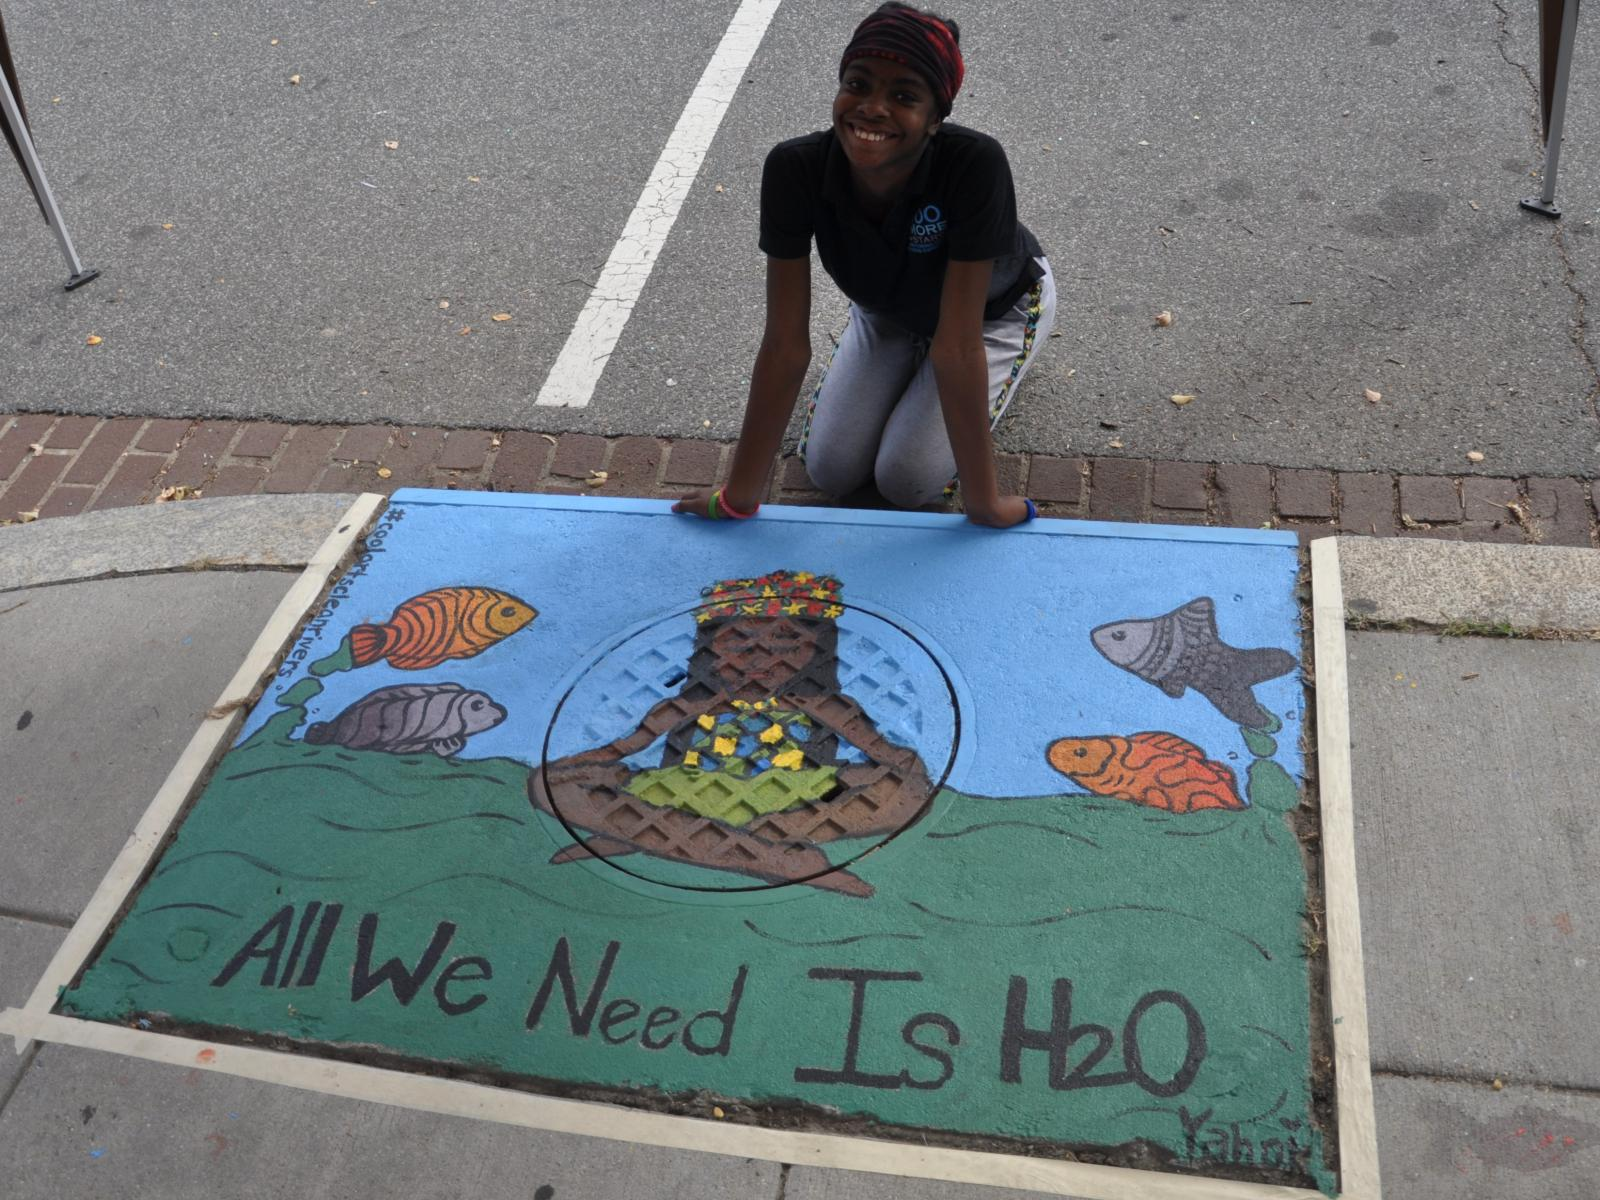 Artist and storm drain painting